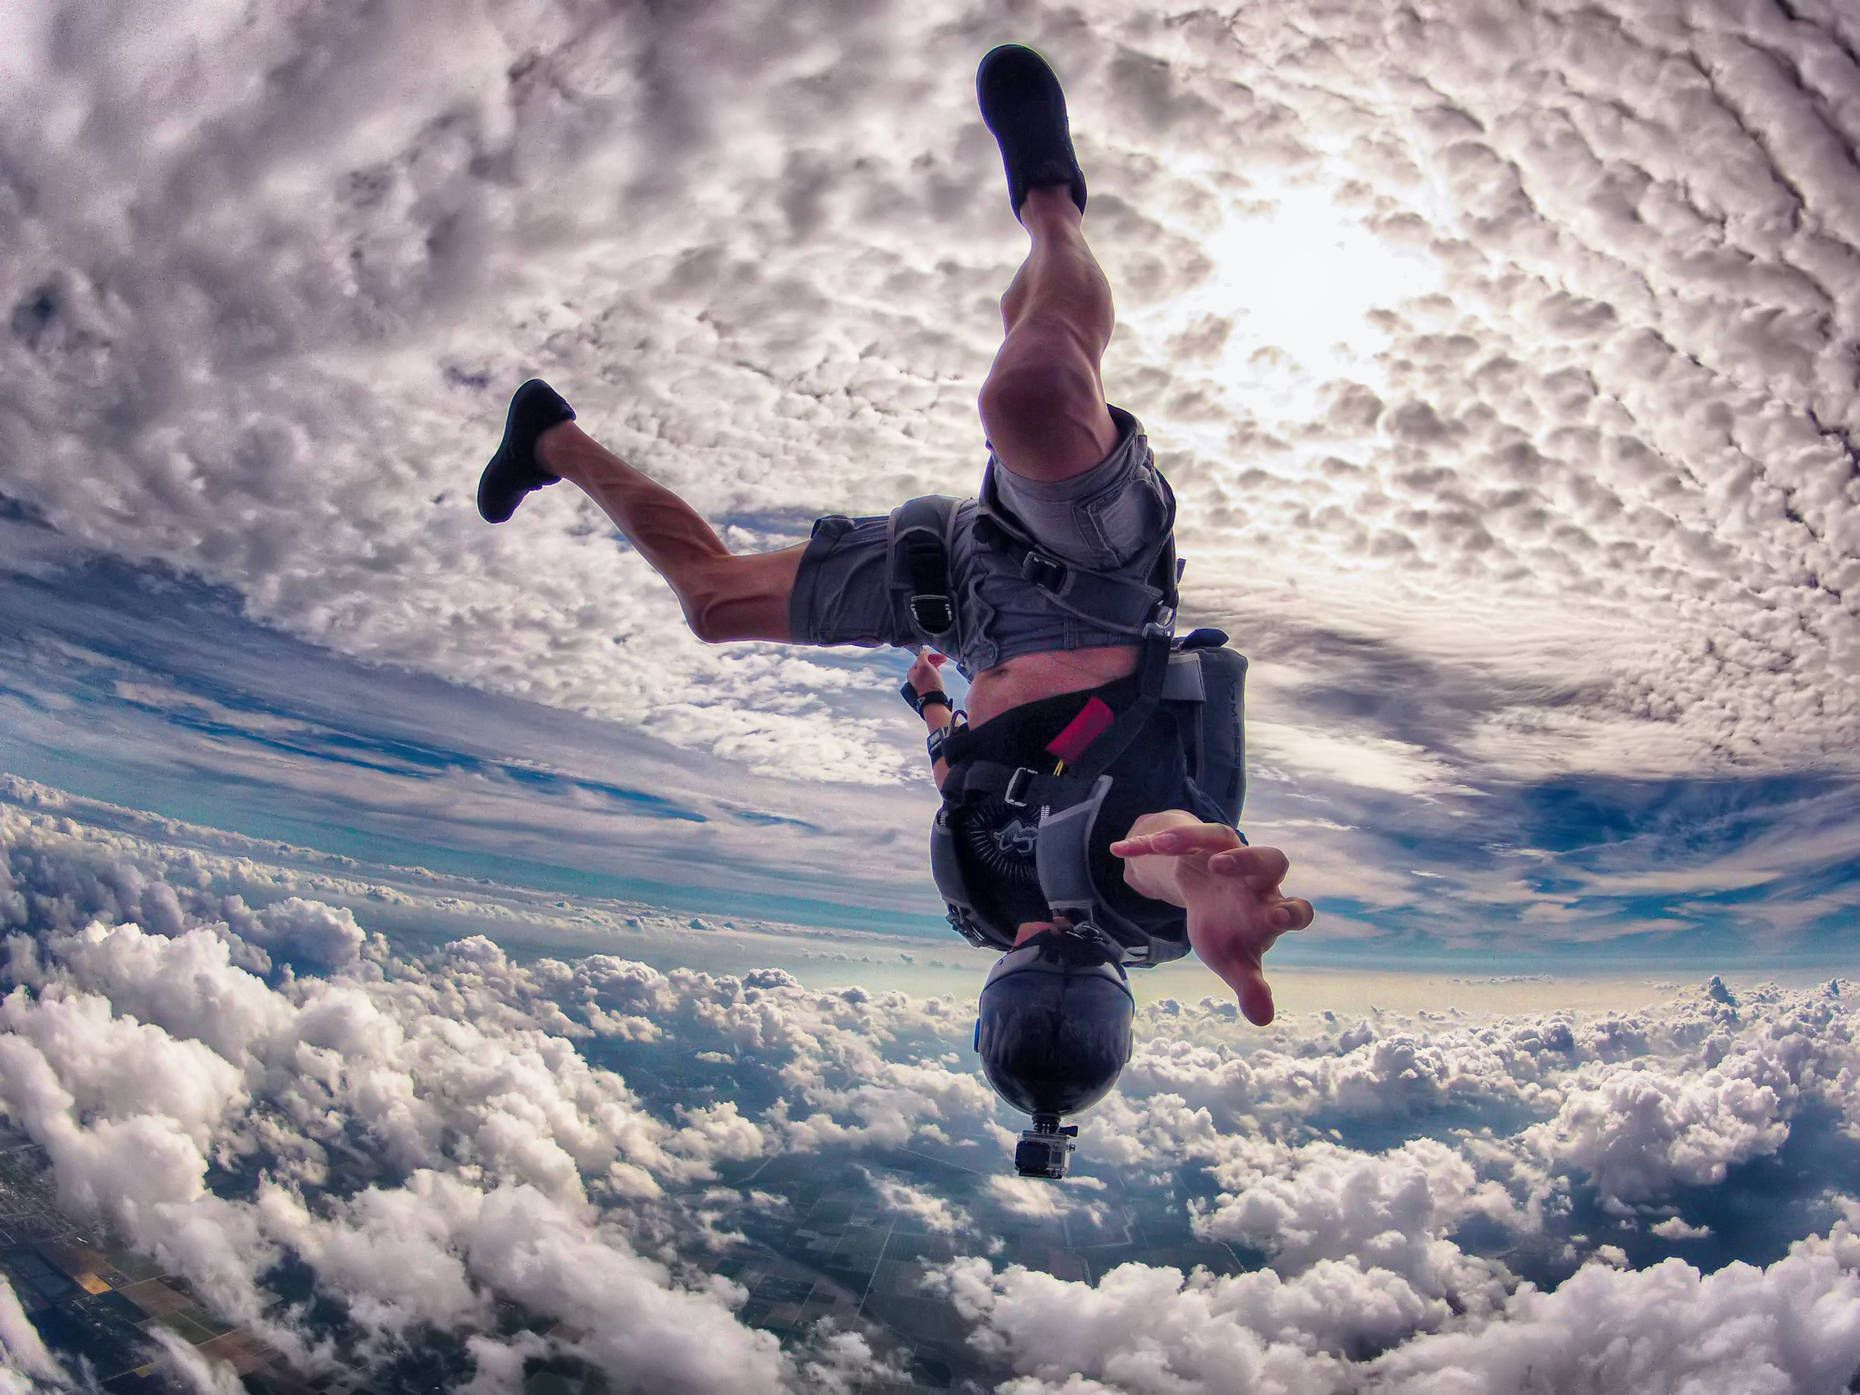 Gopro Skydiver Of The Day Www Thegoprozone Com Online Shop For Best Priced Gopro Gear Hot Goprohot Gopro Parachute Gopropic Skydiving Gopro Extreme Sports